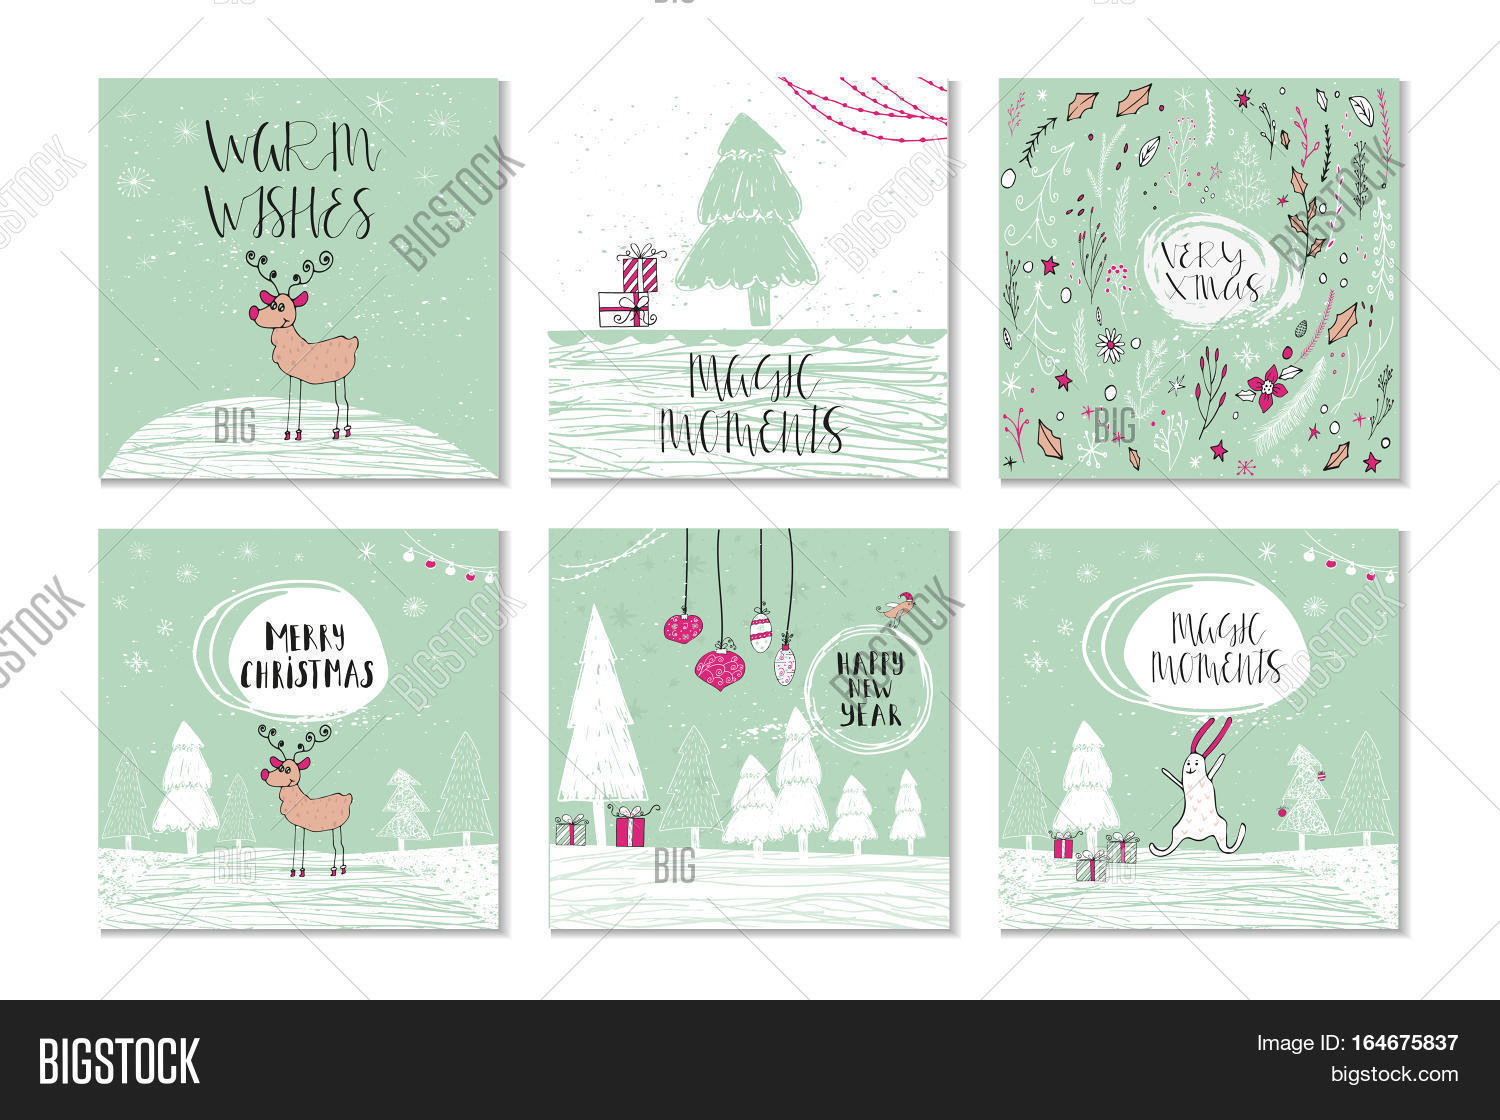 Christmas Gift Card Poster.Card Set Image Photo Free Trial Bigstock